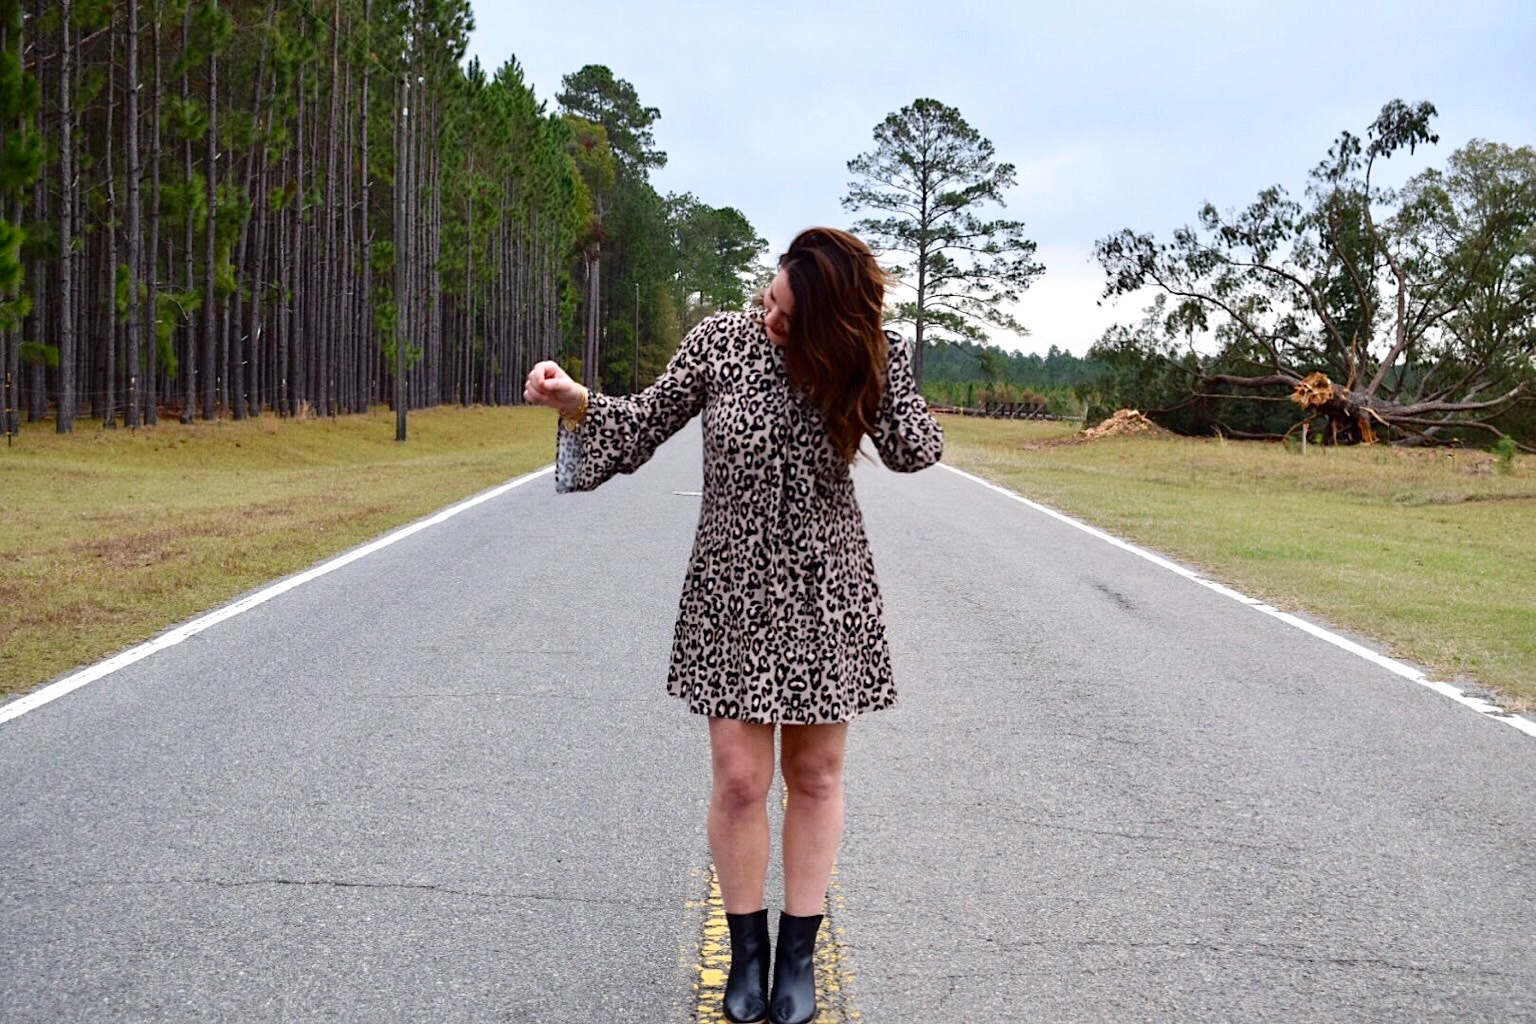 Kim Bishop on country two lane country road wearing a leopard print dress with black booties